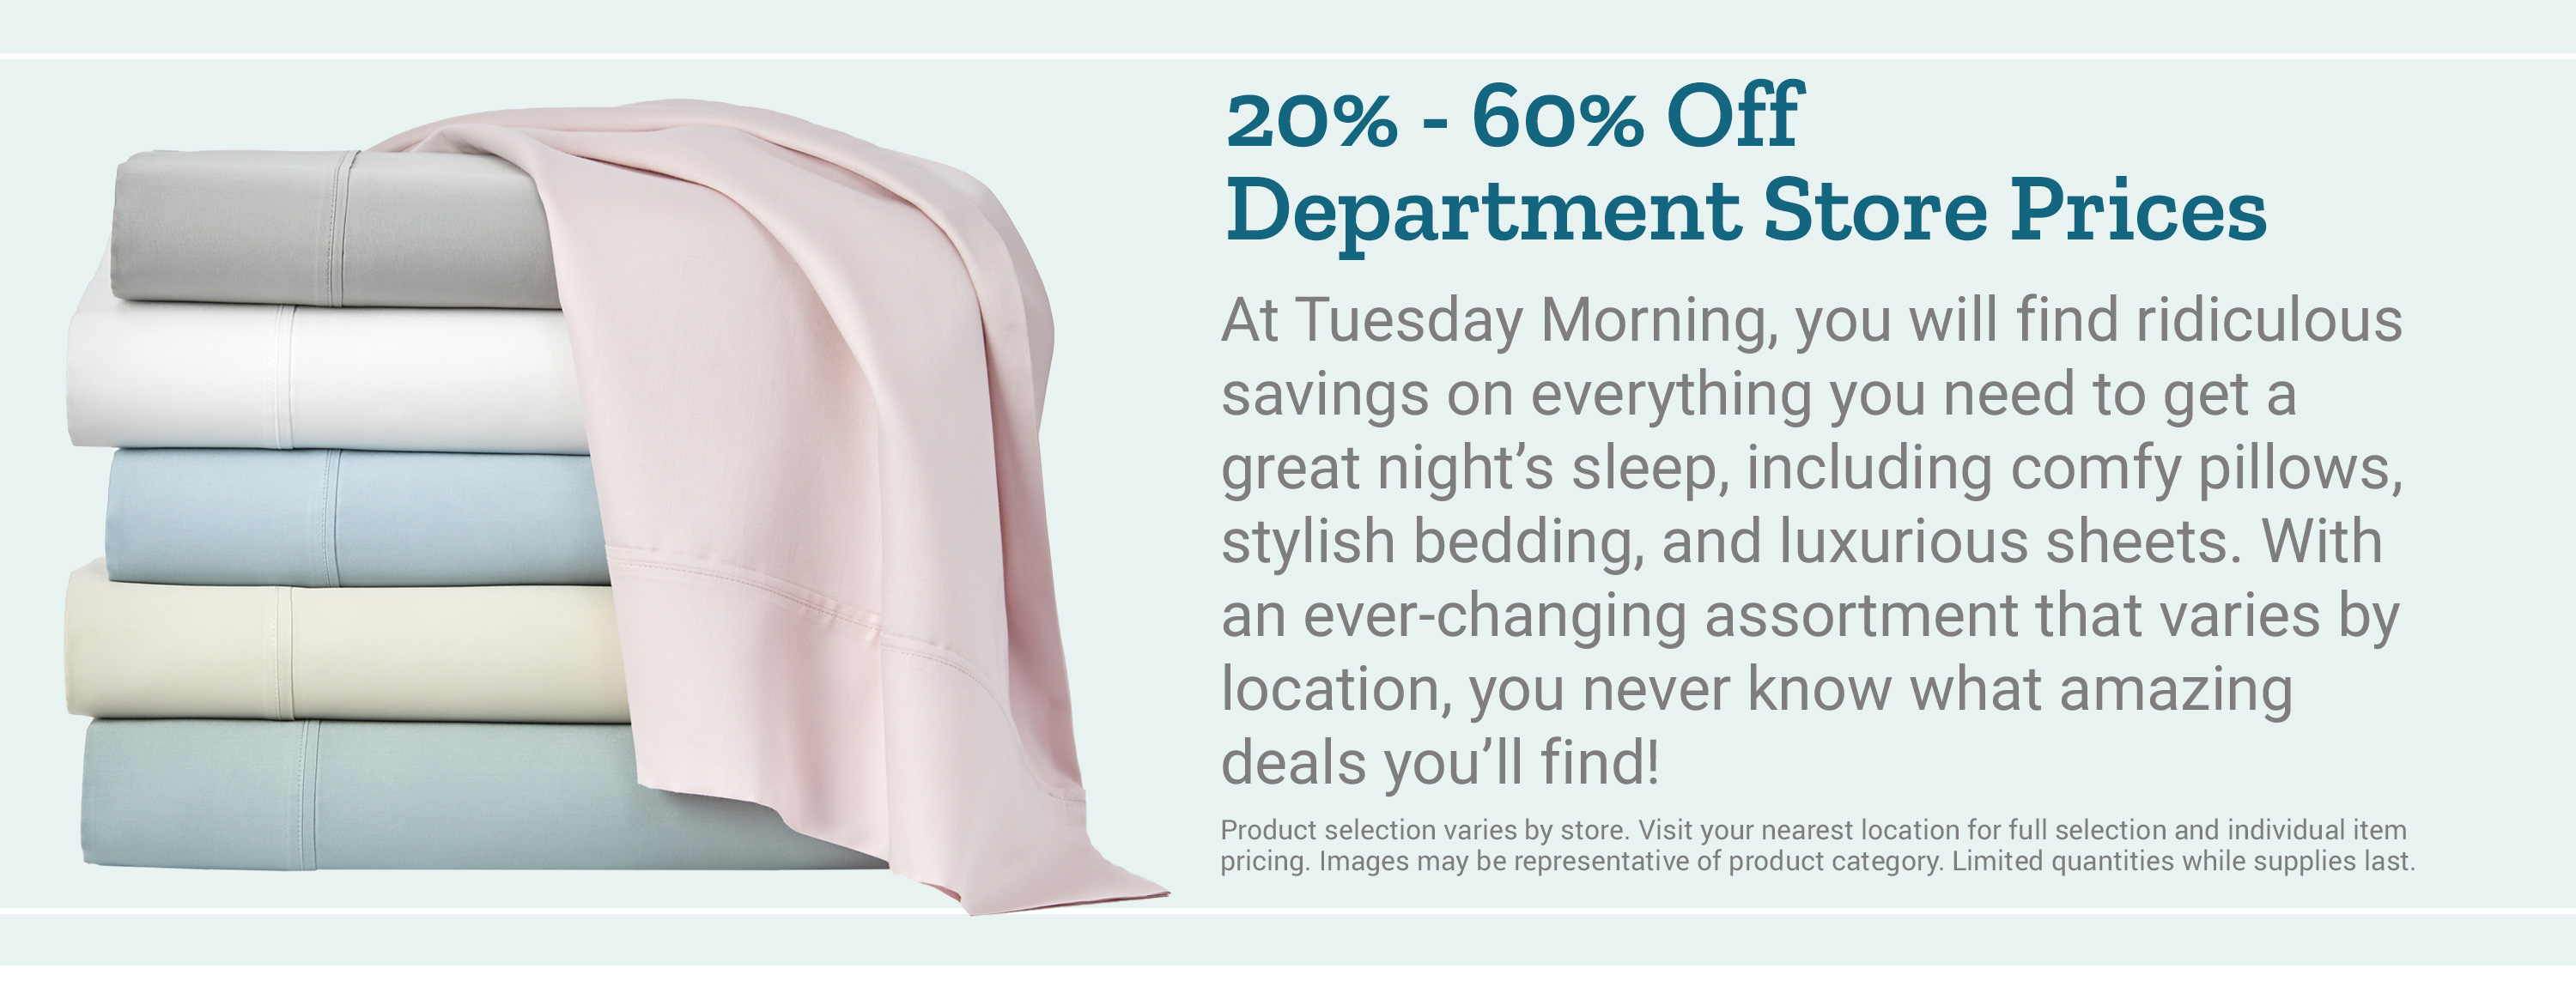 20% to 60% Off Department Store Prices Banner Image